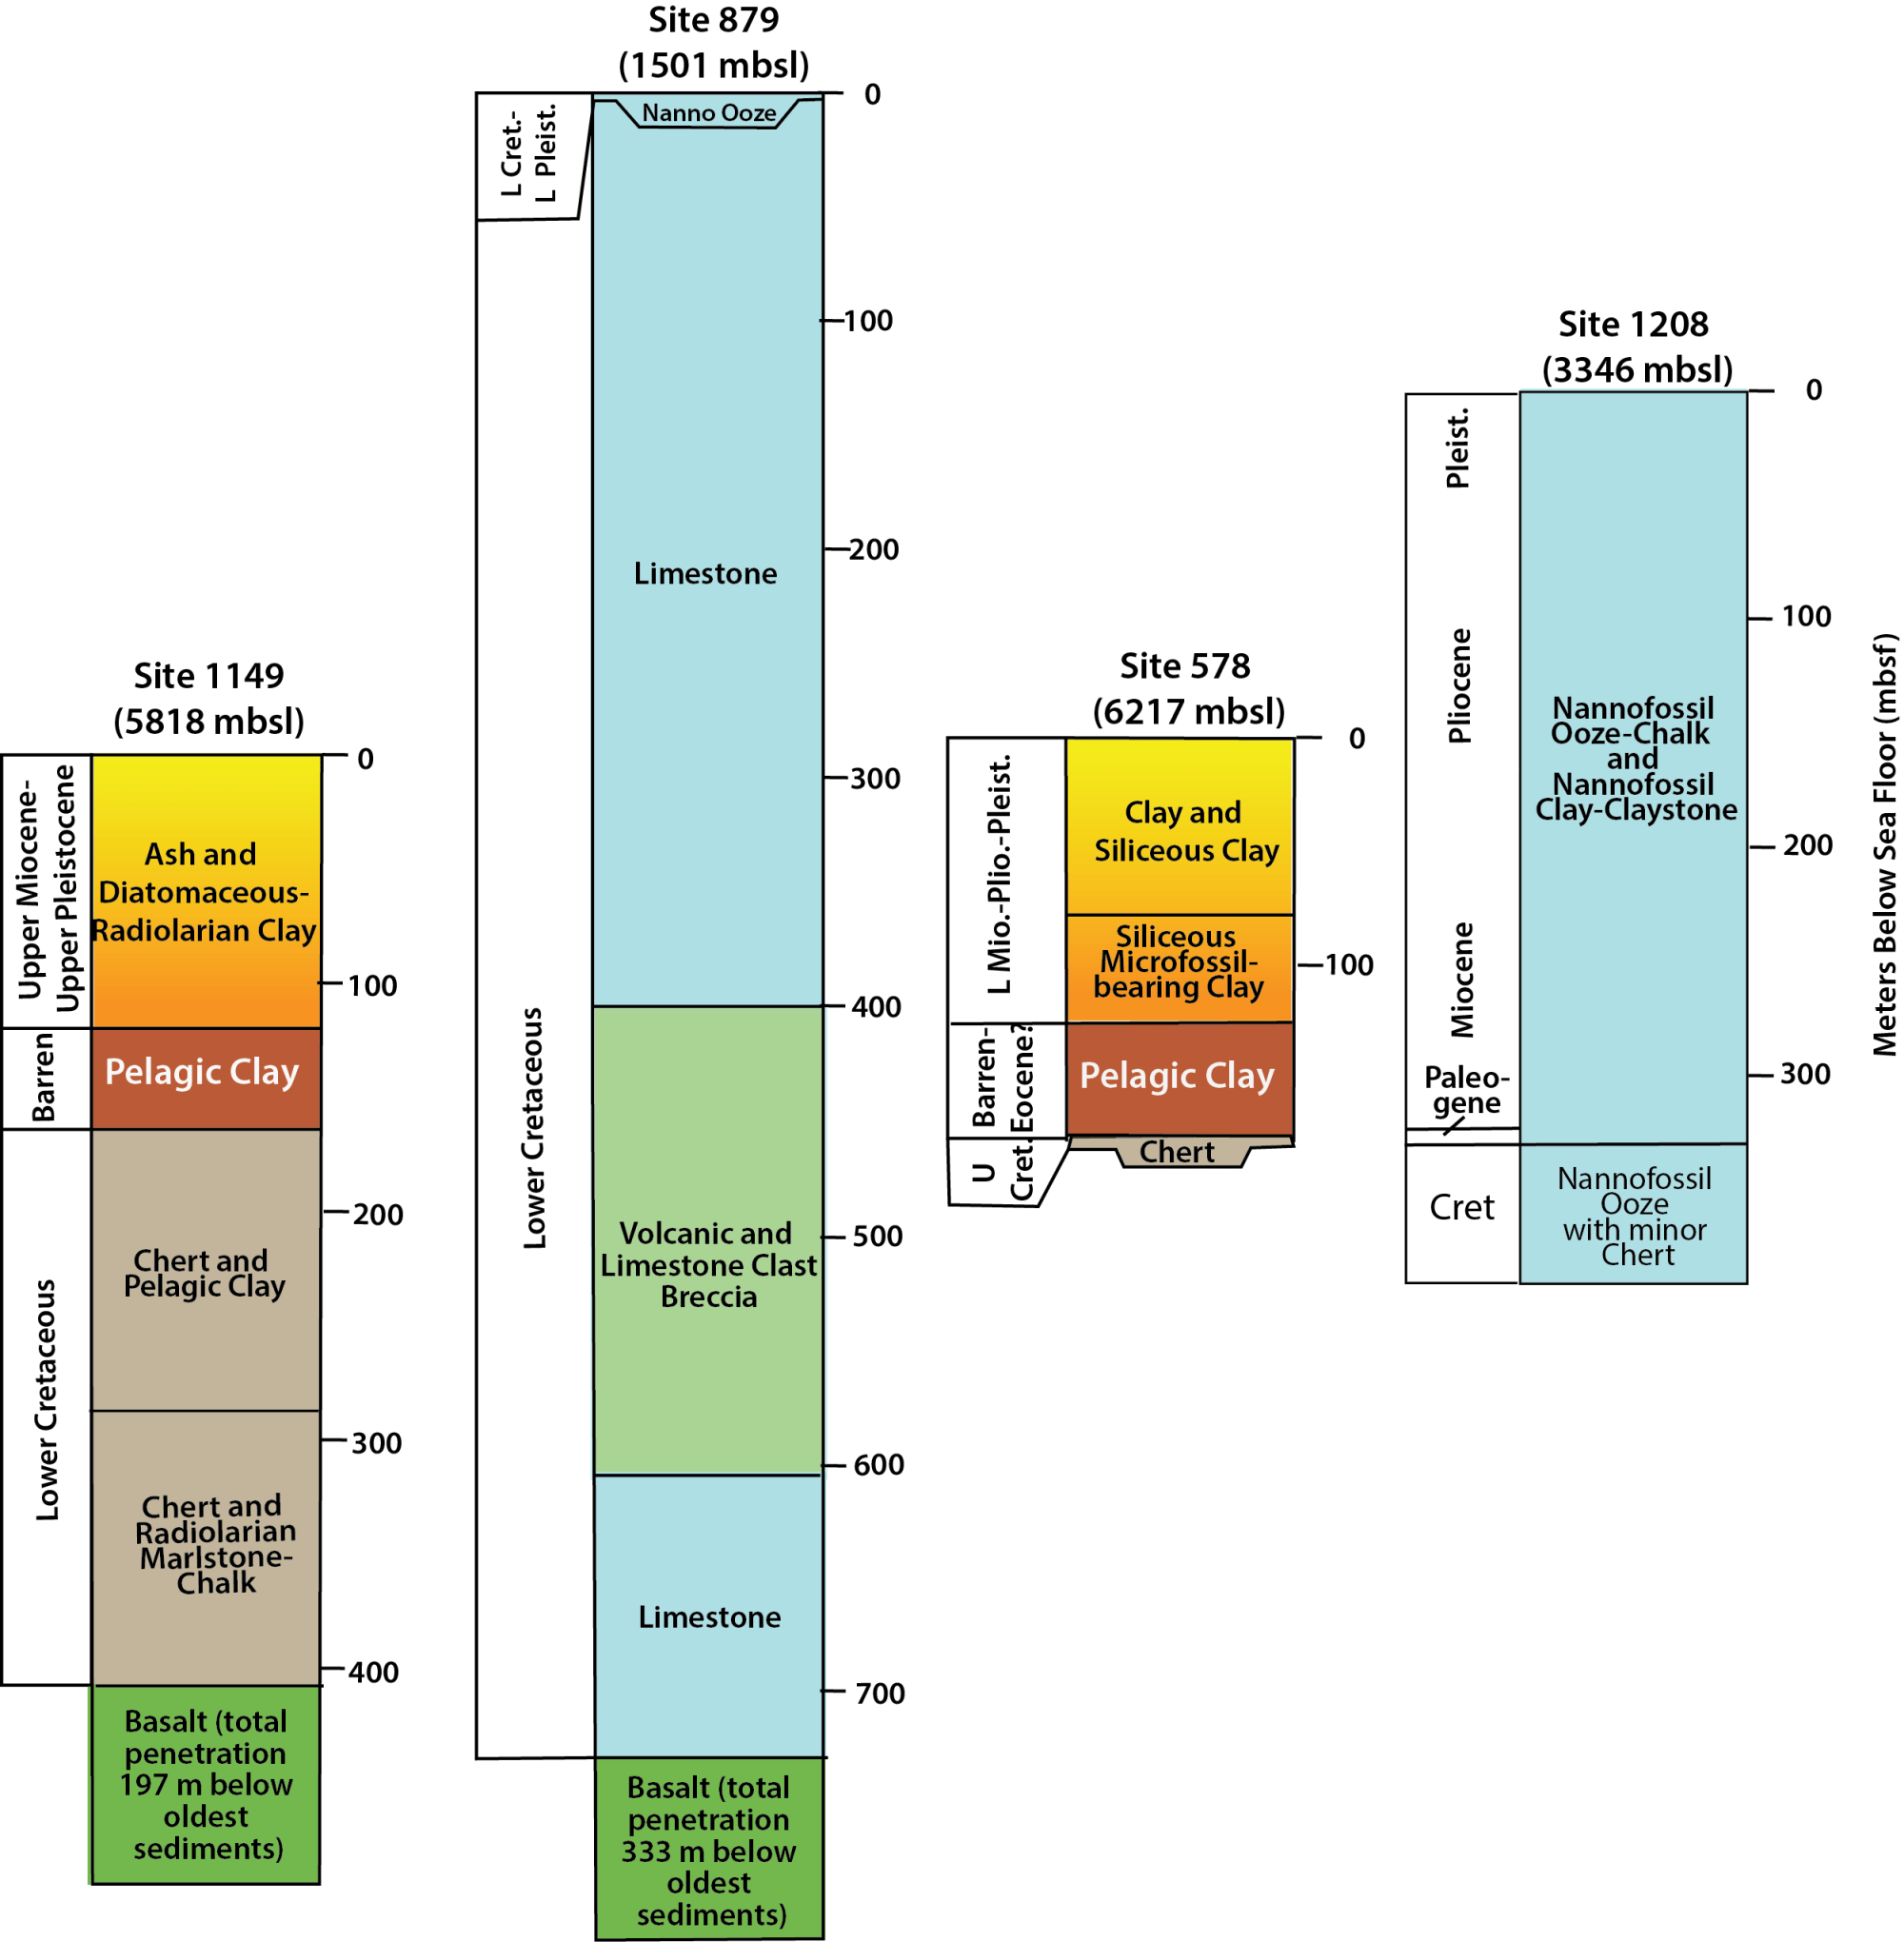 hight resolution of fence diagram showing stratigraphy of sites both from the deep sea floor with pelagic clay and seamounts dominated by carbonate pelagic clay absent